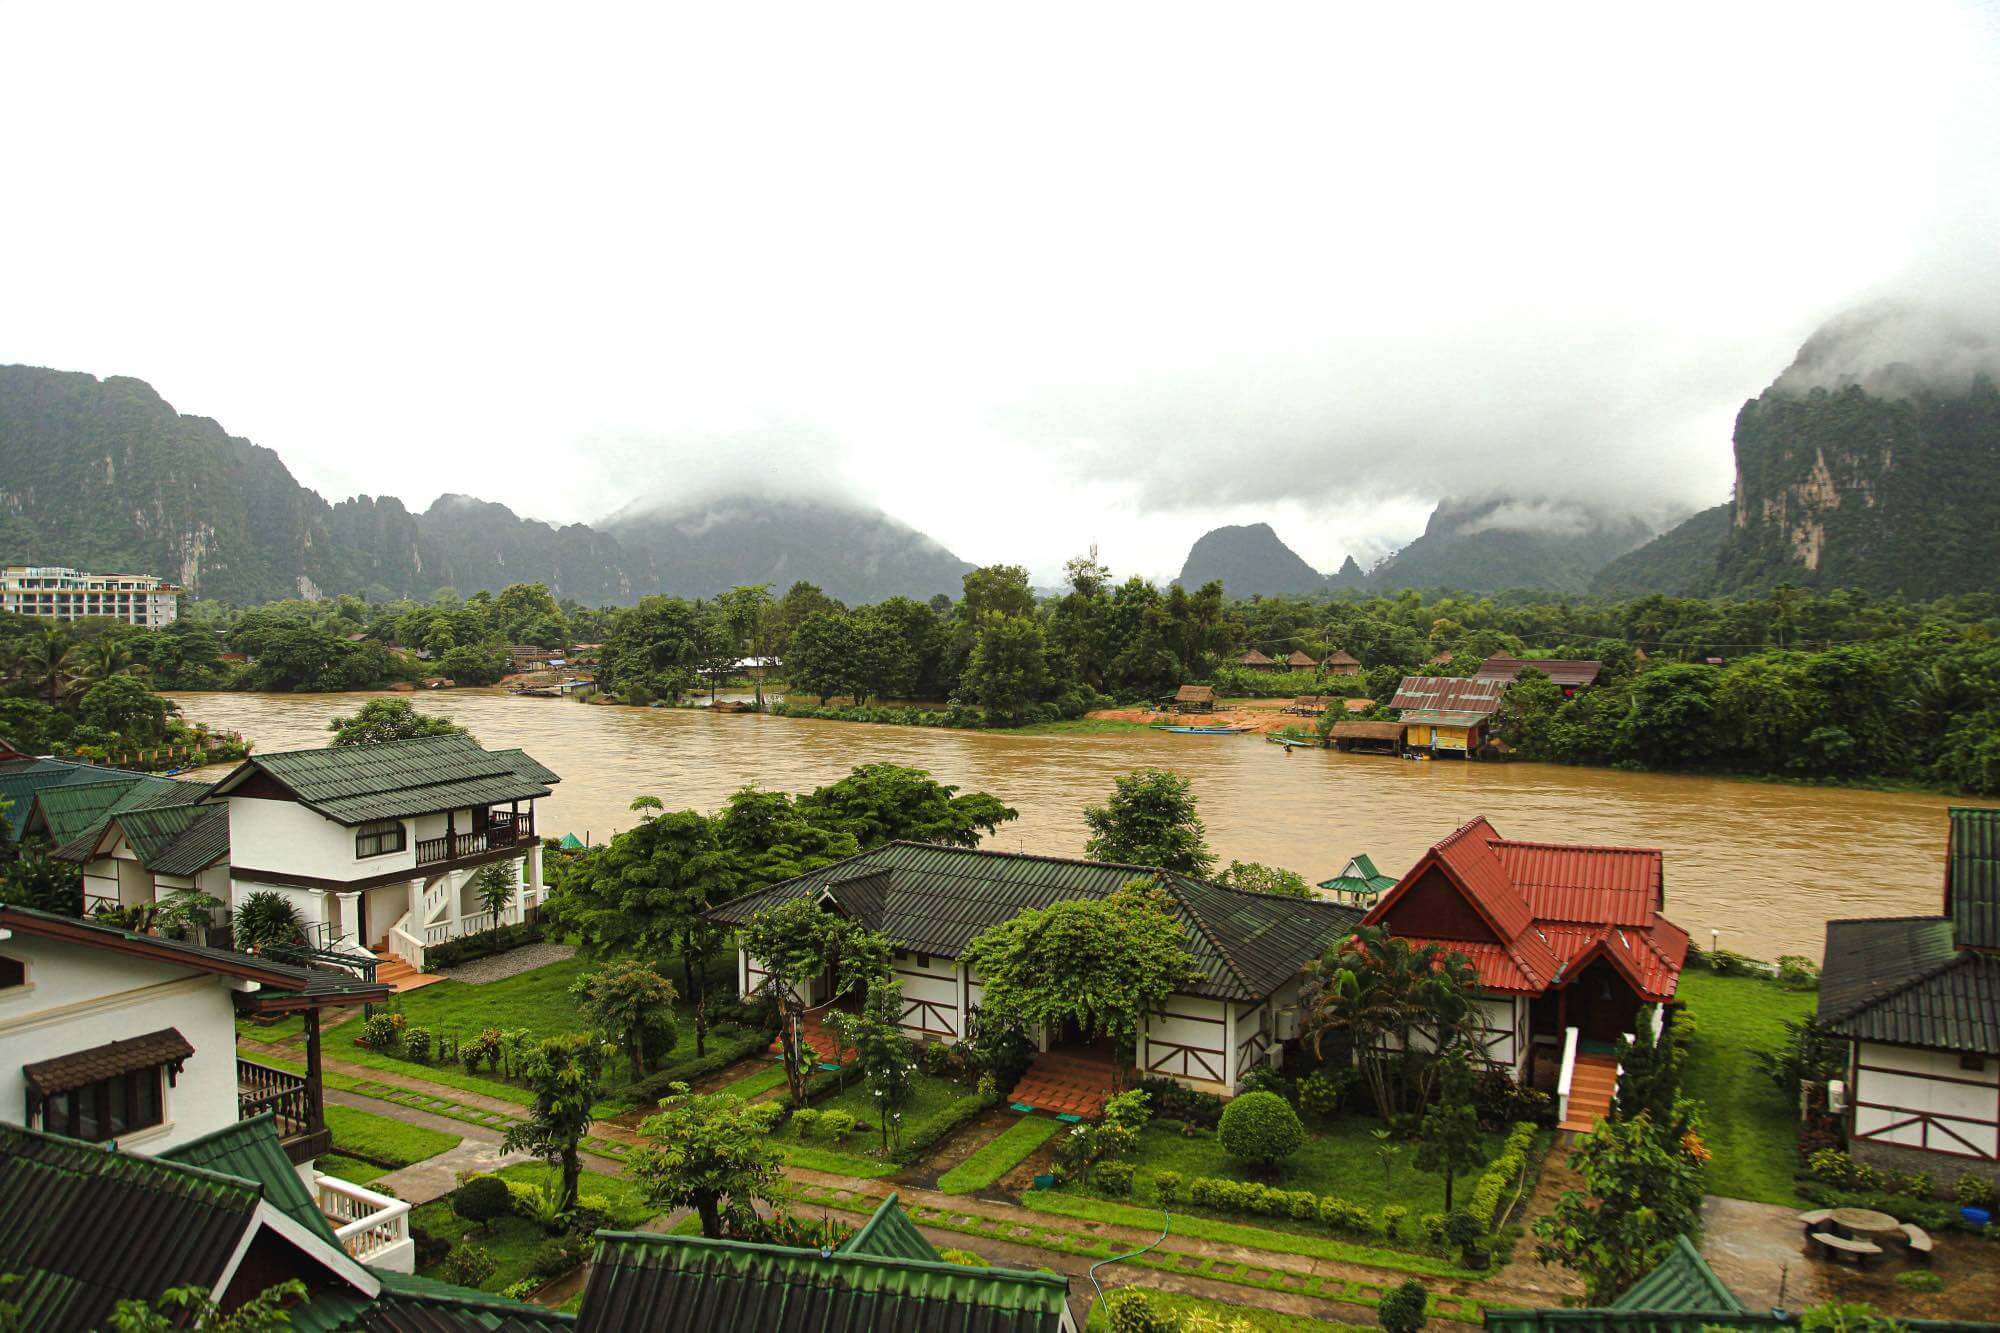 View of the Nam Song river in Vang Vieng Laos